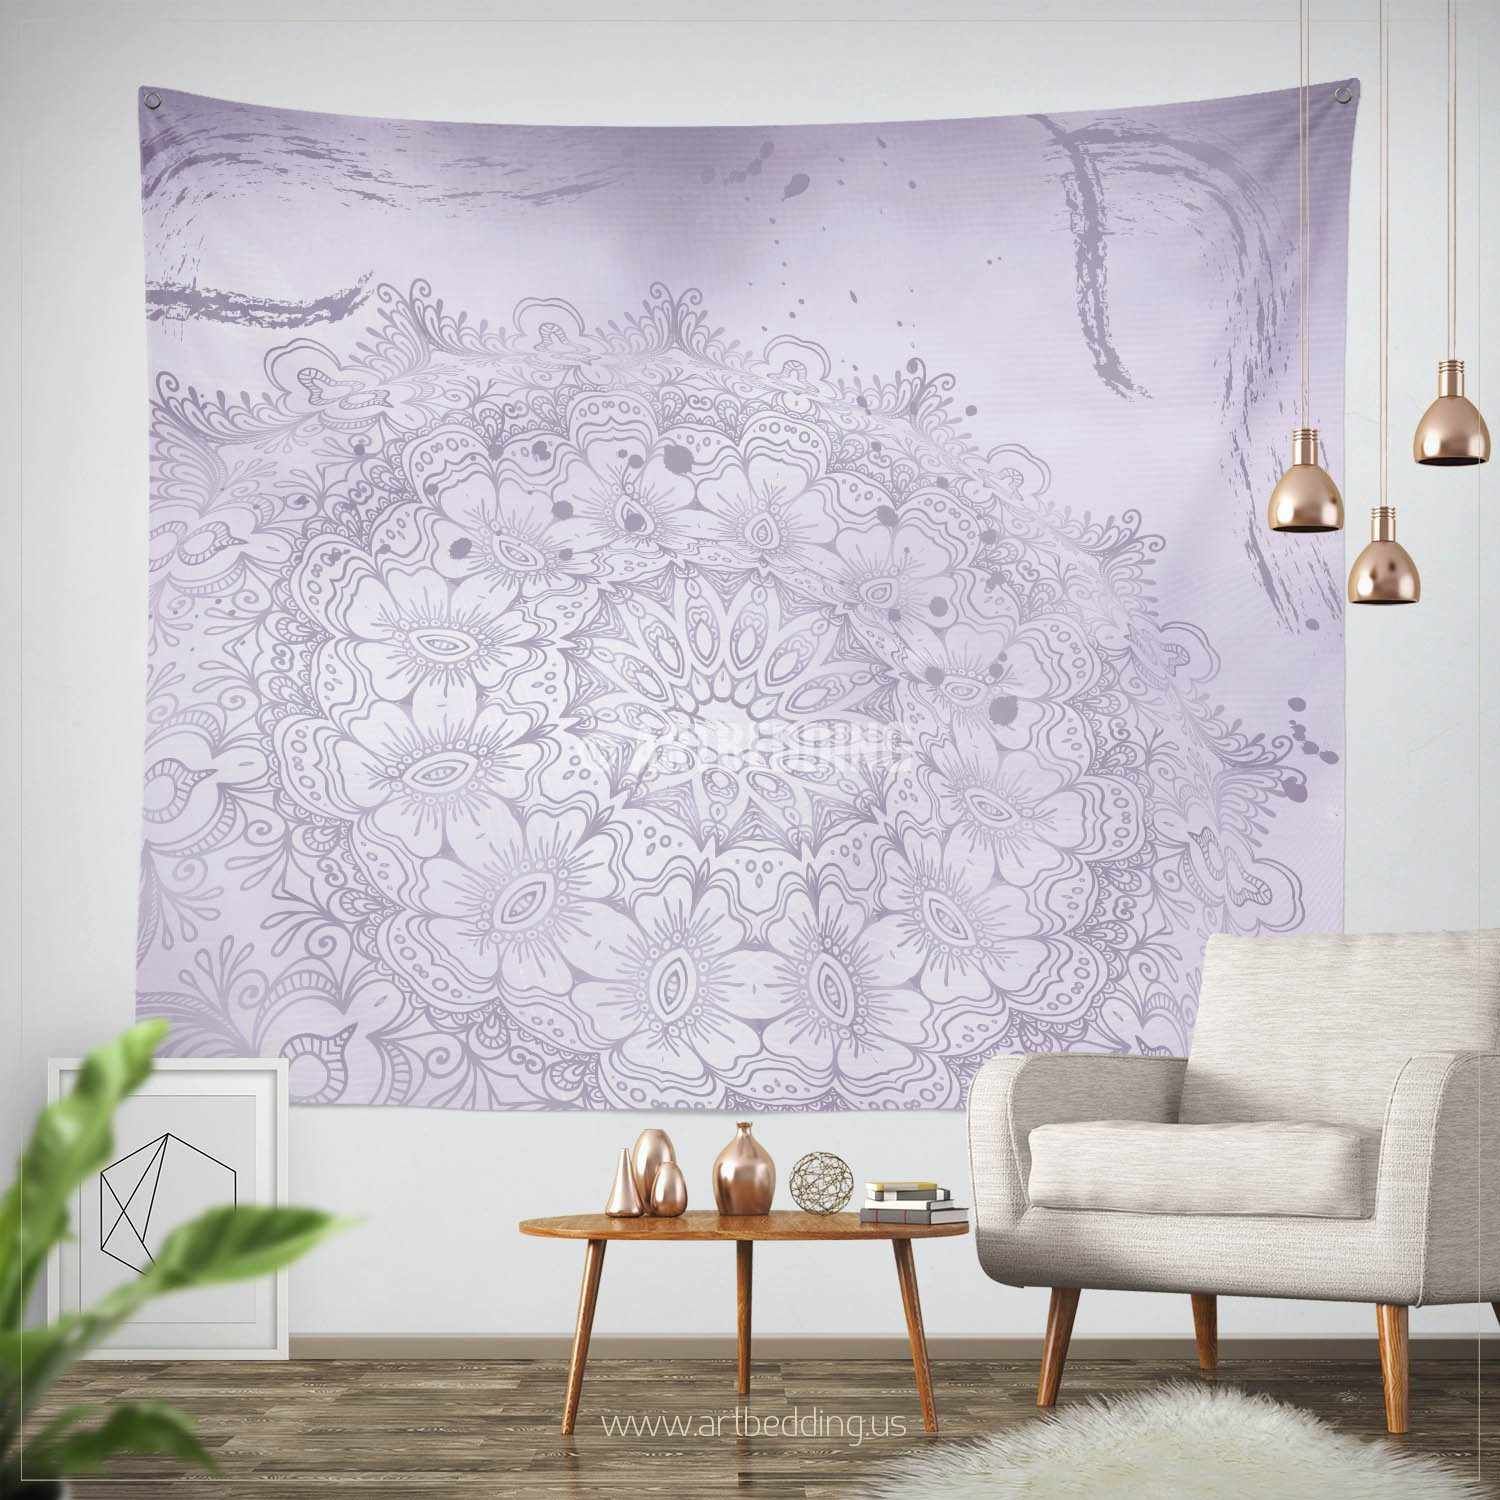 Lavender Wall Art bohemian tapestry, lavender purple mehendi henna tattoo style wall